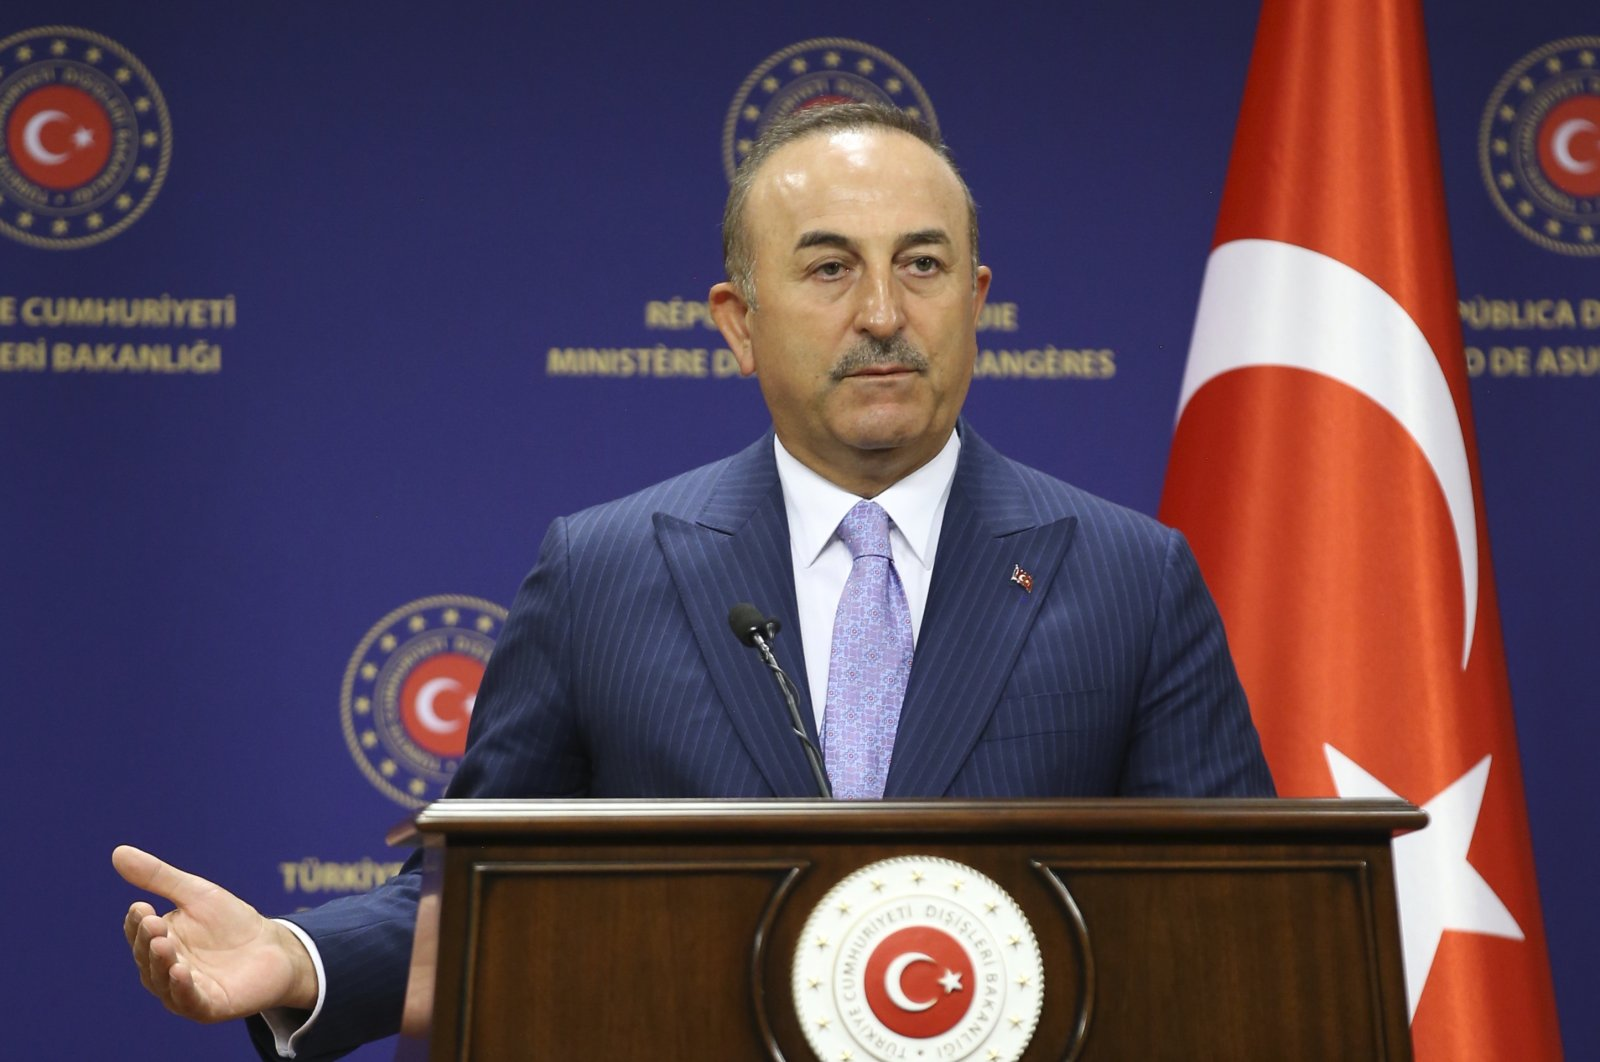 Foreign Minister Mevlüt Çavuşoğlu speaks at a joint news conference with Hungary's Foreign Minister Peter Szijjart after their talks, in Ankara, Turkey, Tuesday, June 30, 2020. (AP Photo)